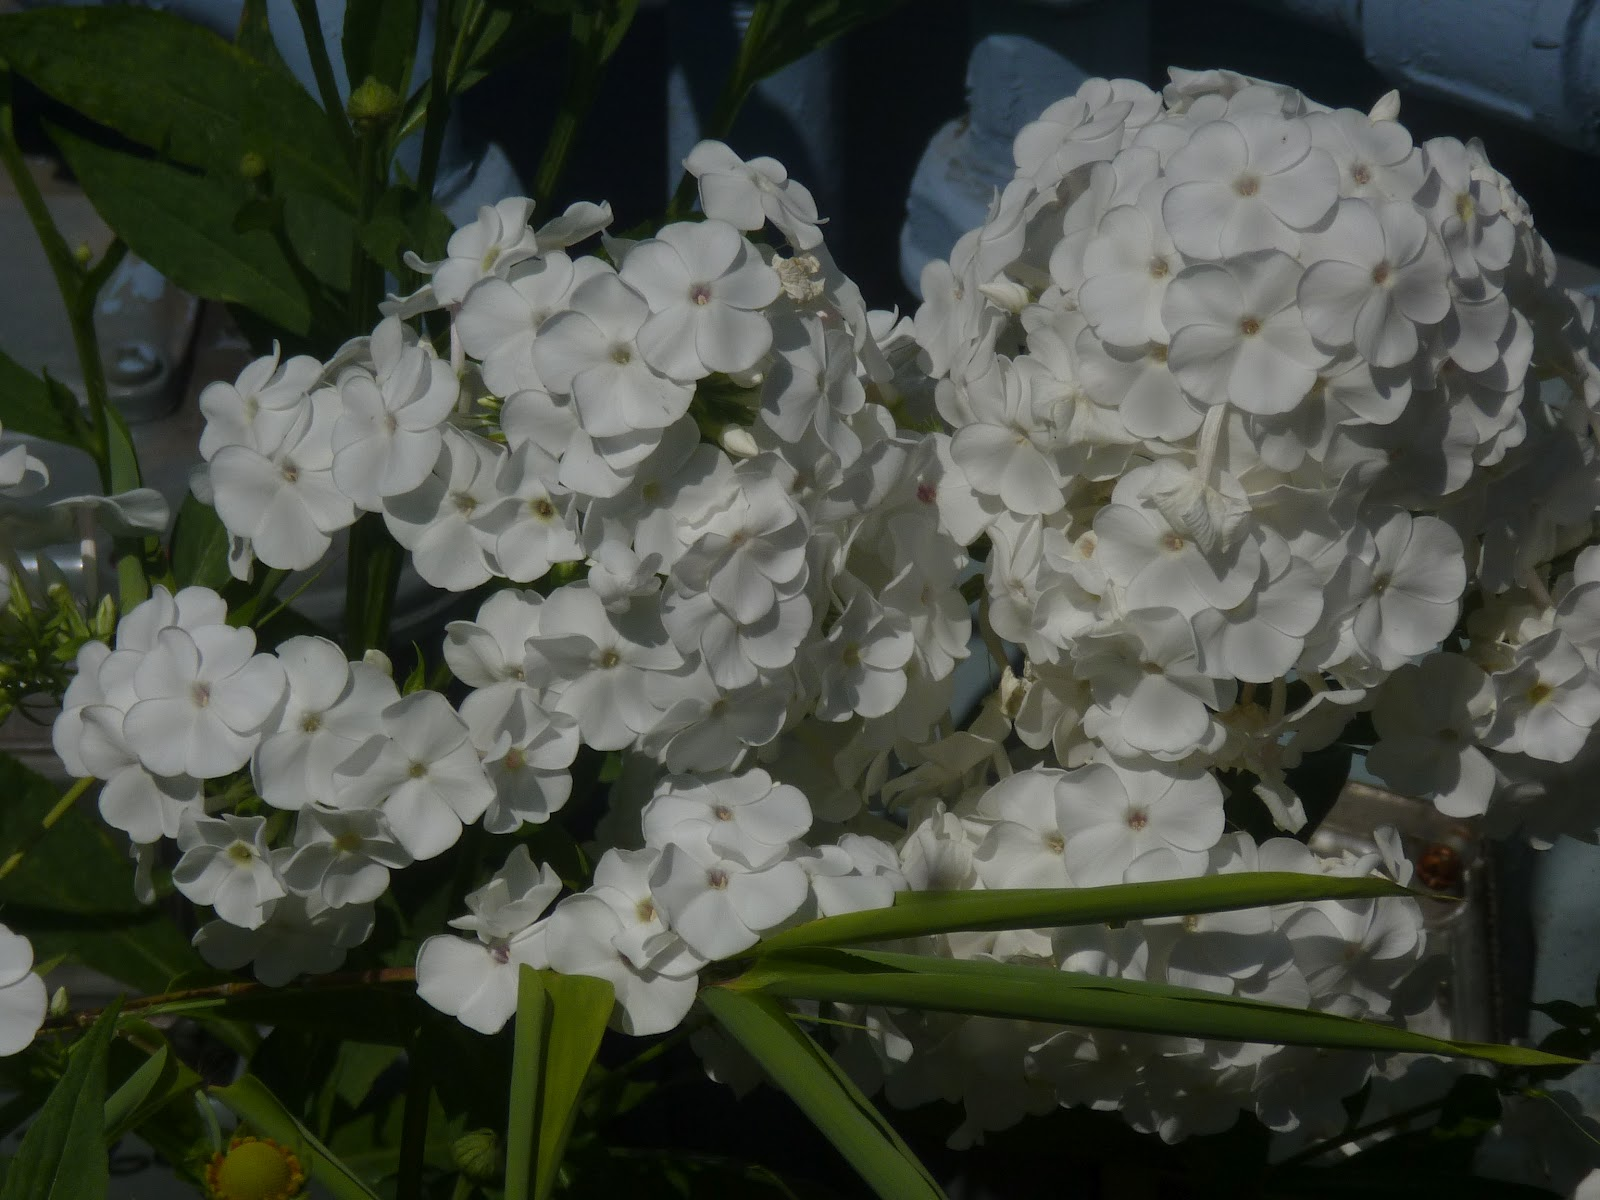 White Flowers Names List With Pictures Find This Pin And More On